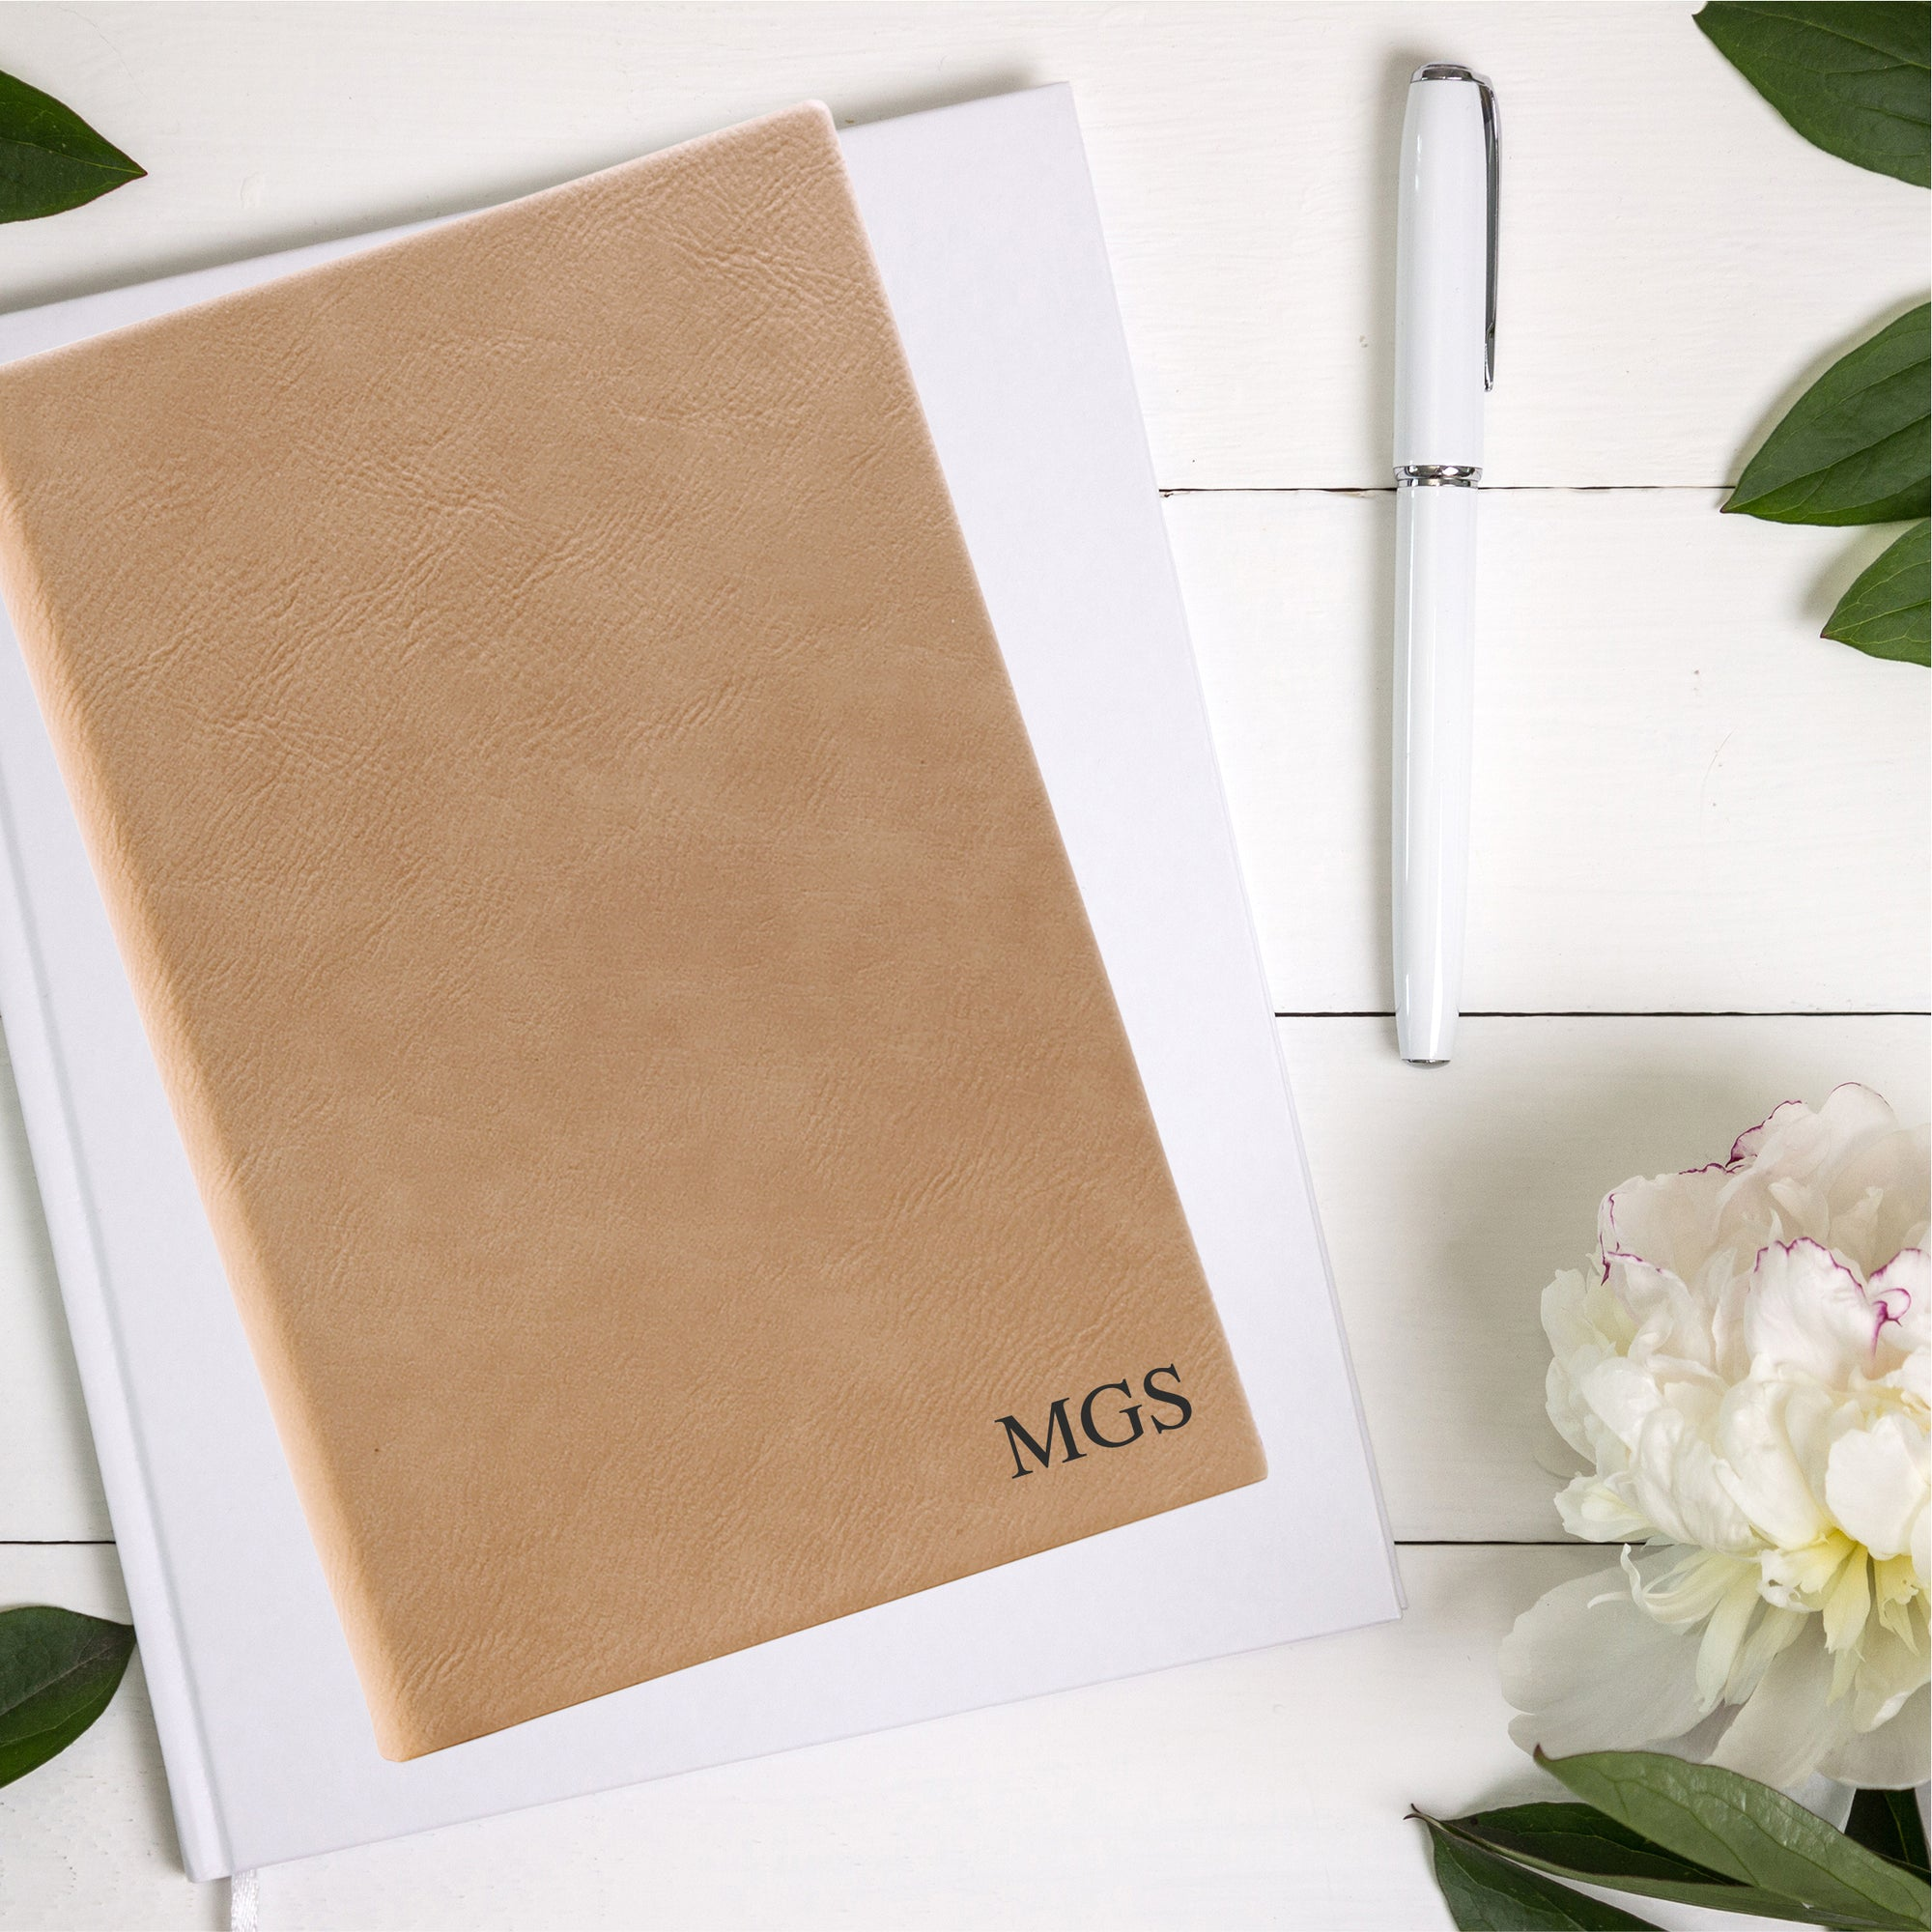 Monogramed Leatherette Journal